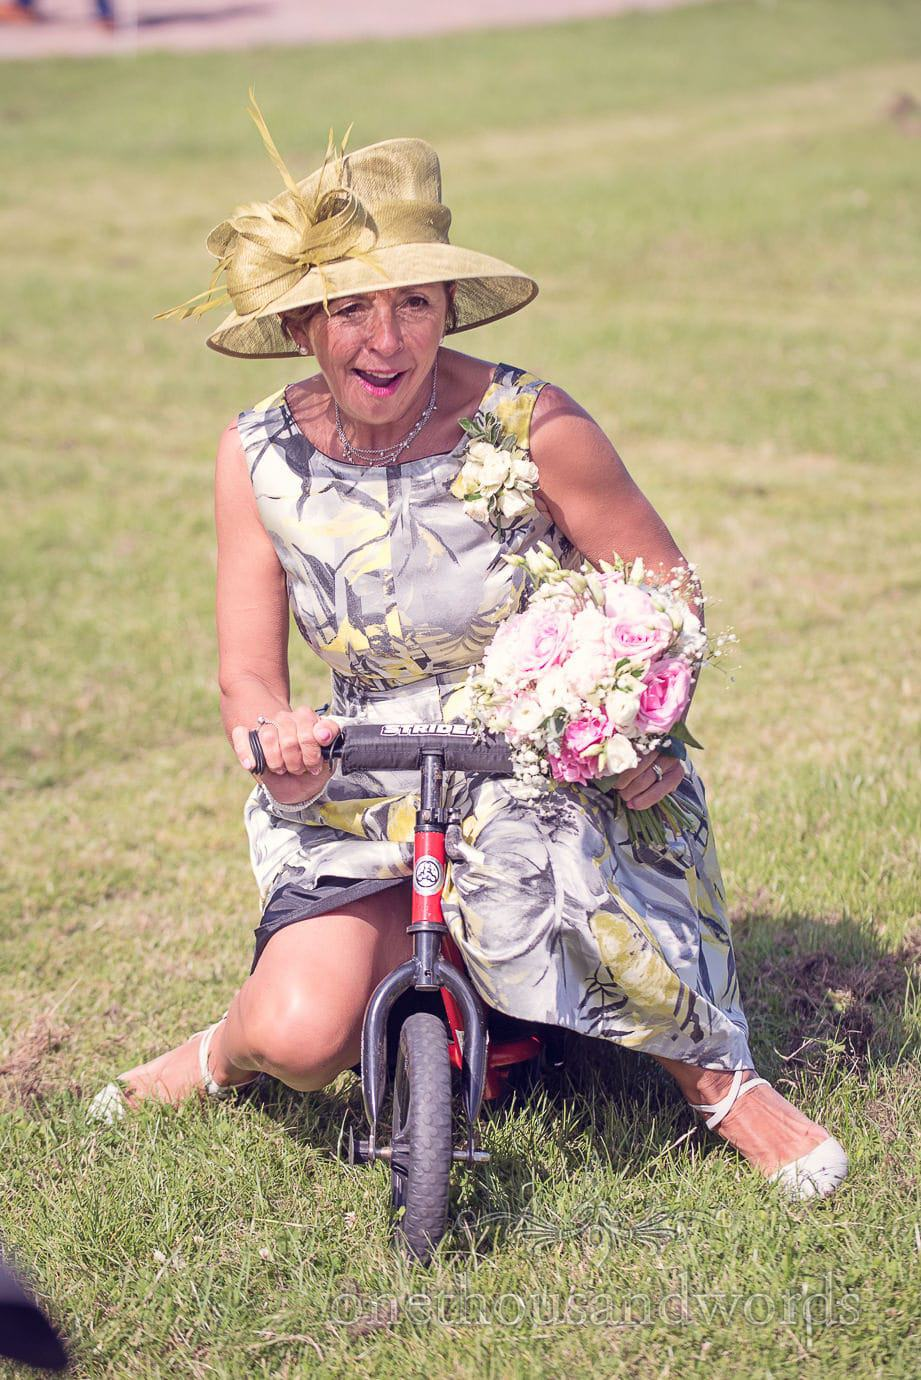 Wedding guest in stylish dress and hat rides a child's bike